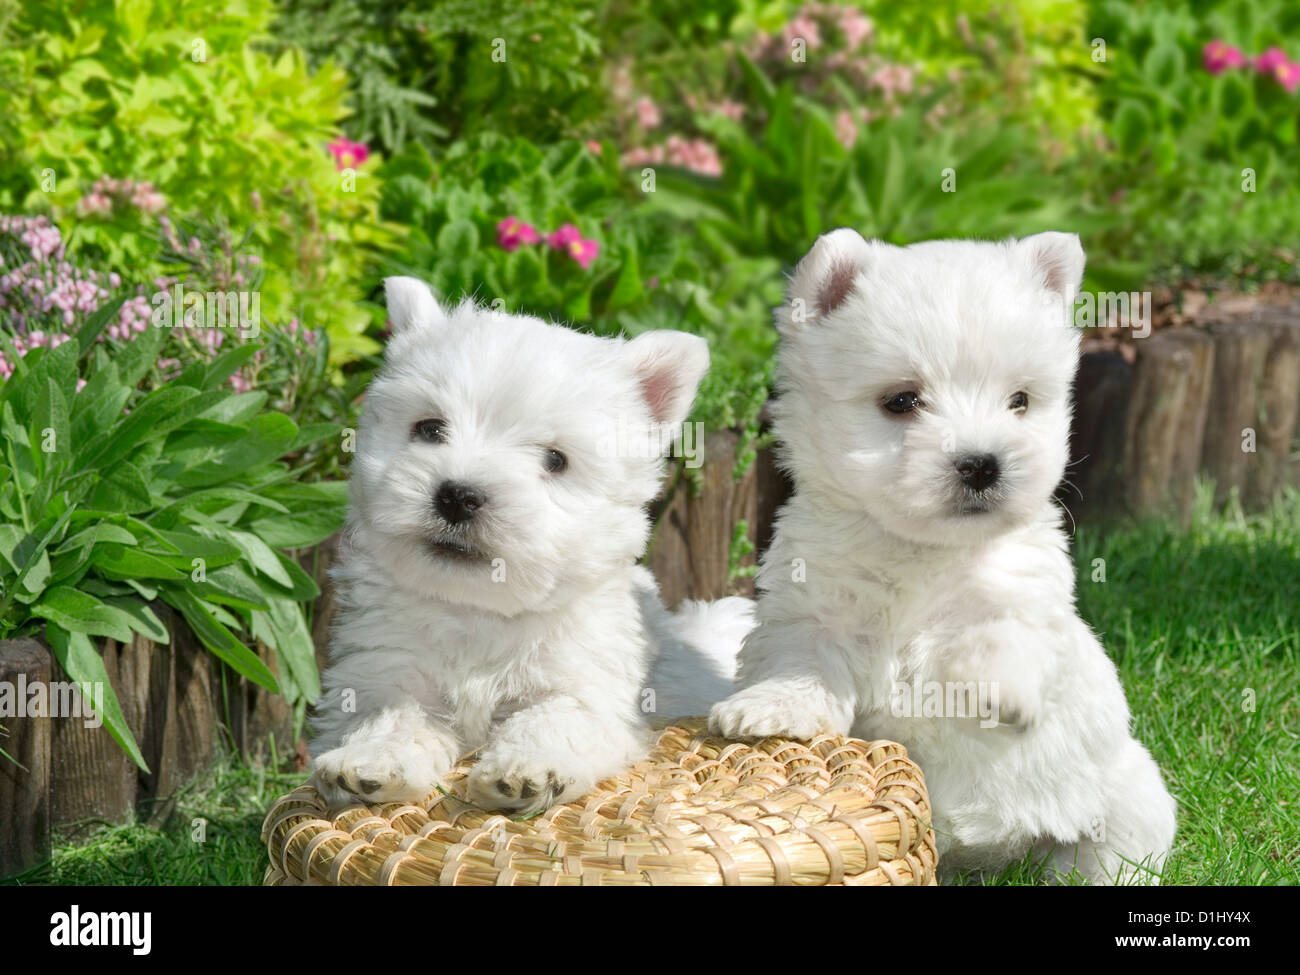 Outdoor portrait of West Highland White Terrier dogs in the garden - Stock Image